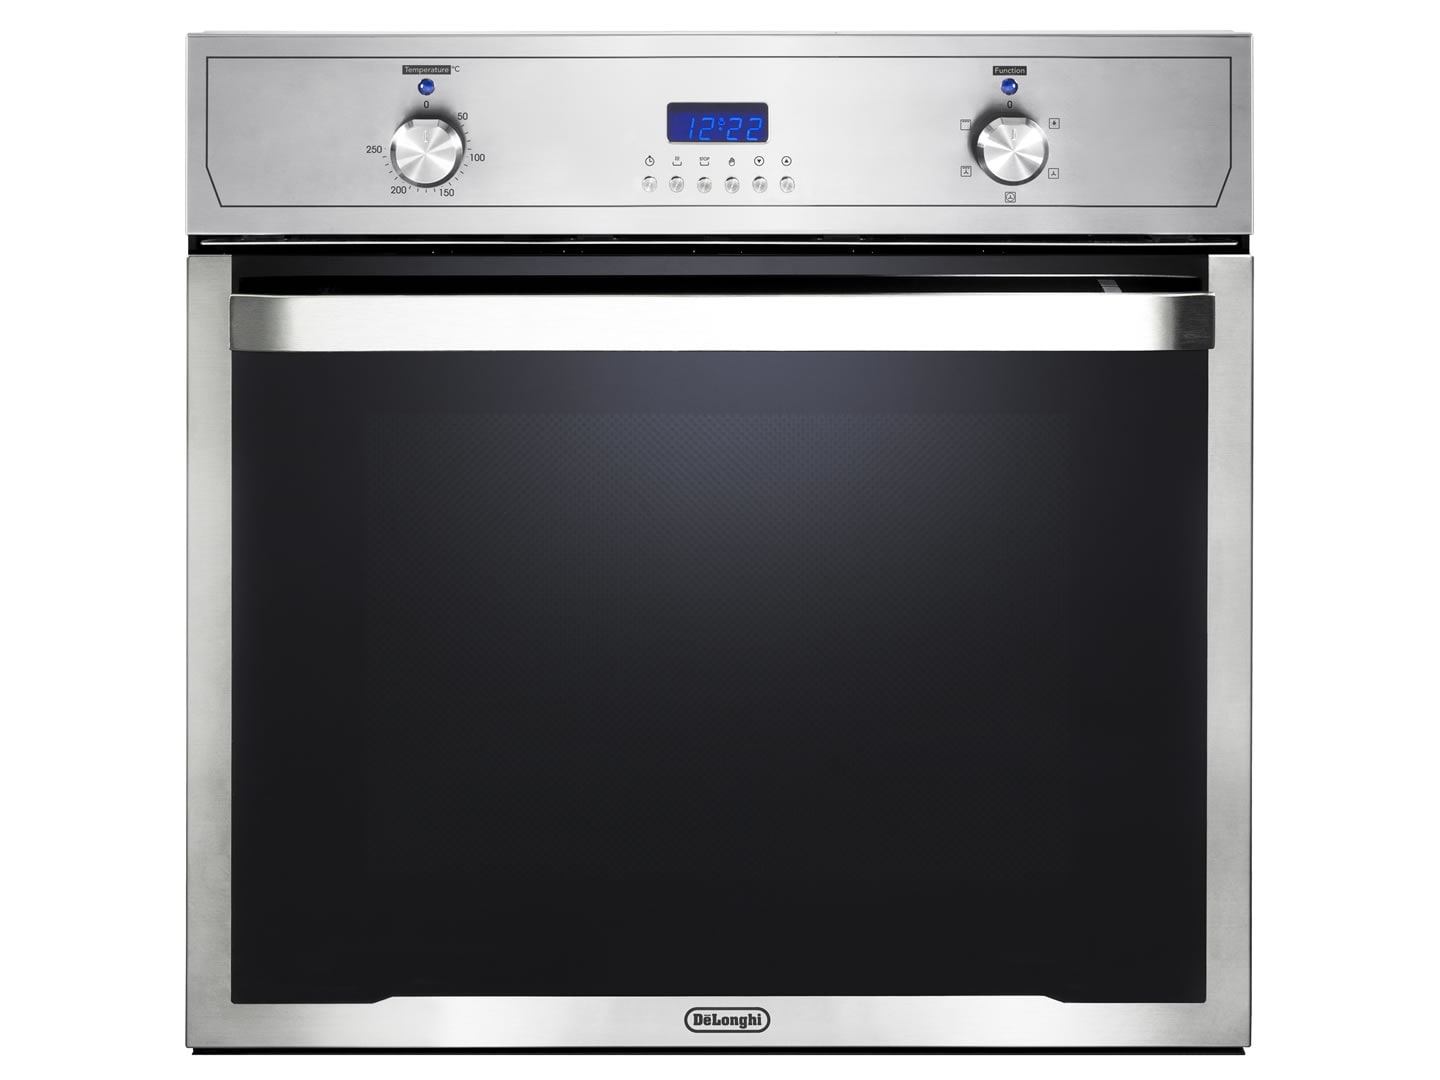 DeLonghi 4 Function 60cm Built-in Lifestyle Oven DEL604M